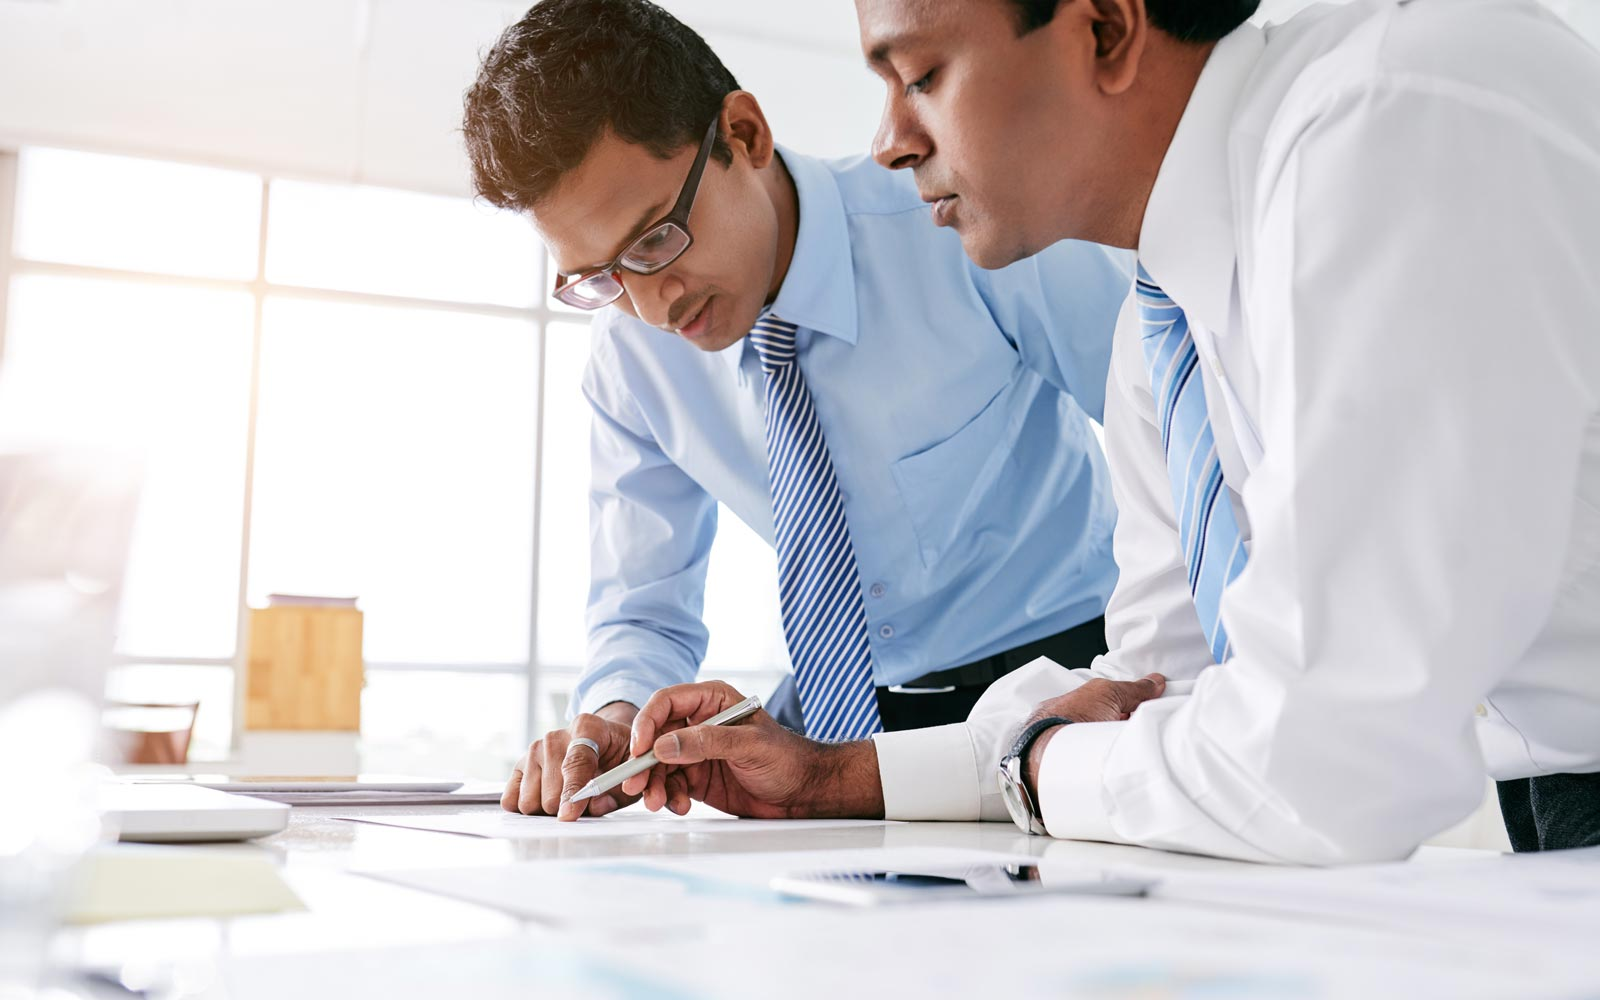 Two men standing side by side over an office table carefully examine the contents of a document open on the table.